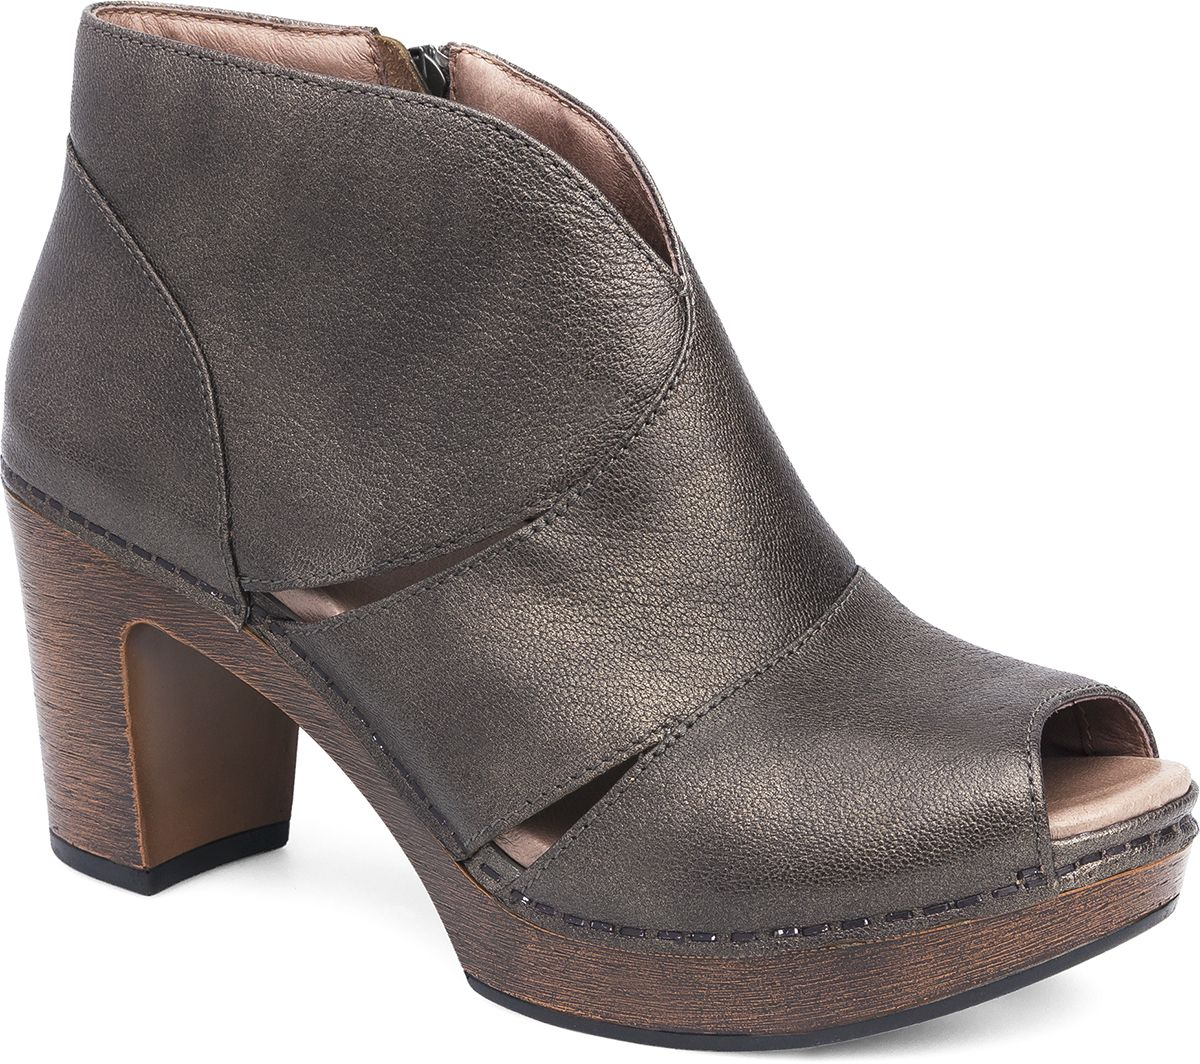 Reach new fashion heights with Dansko Delphina. |1000s of comfortable  women's shoes reviewed at